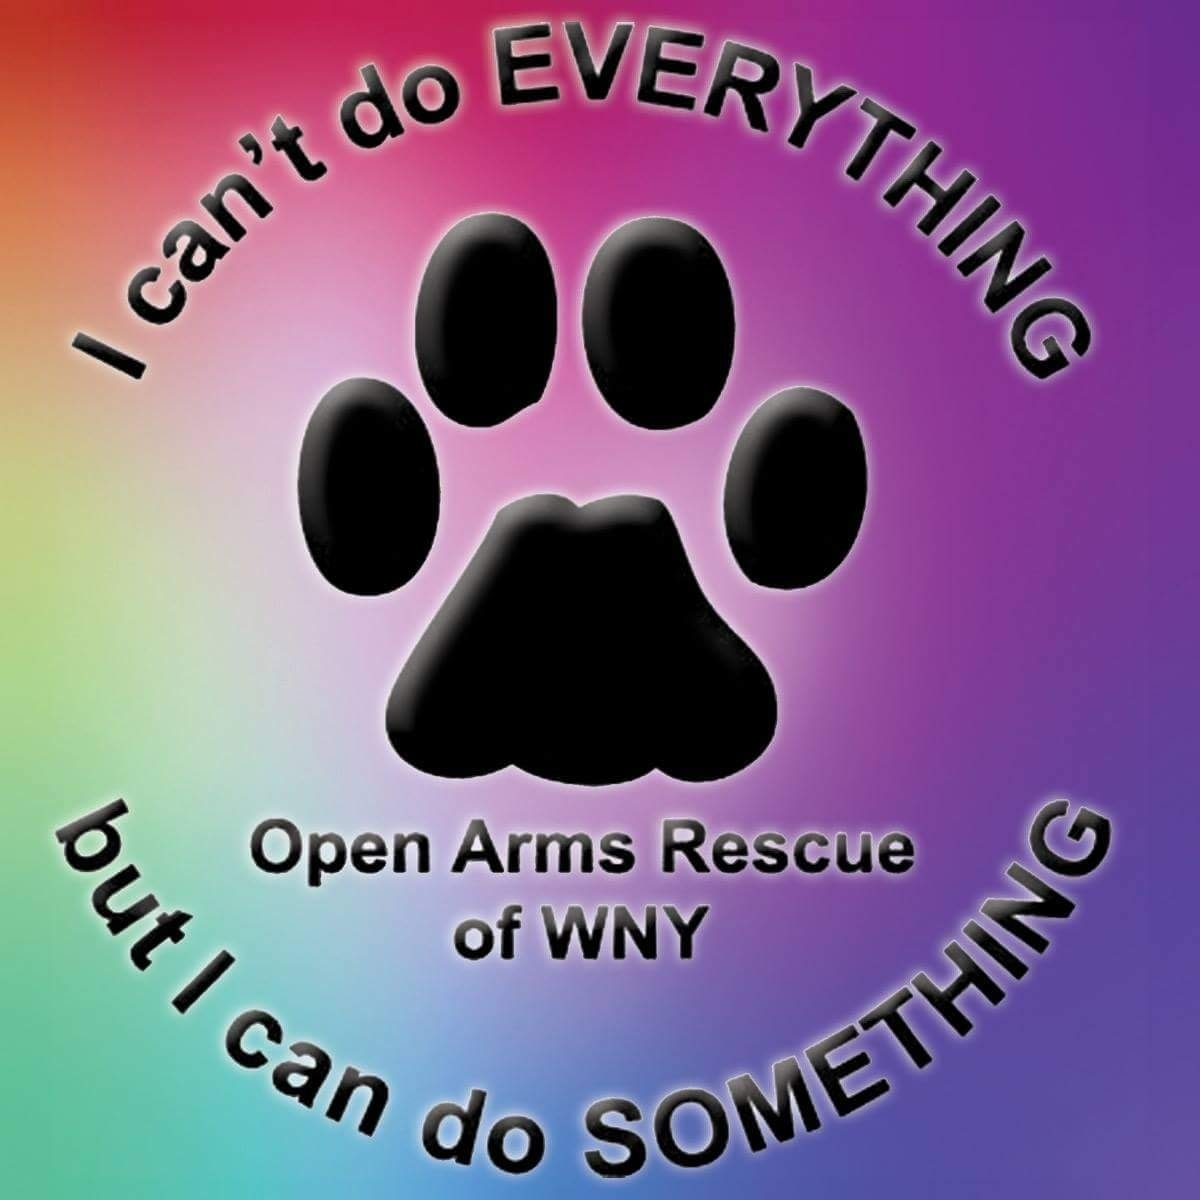 Open Arms Rescue Of WNY